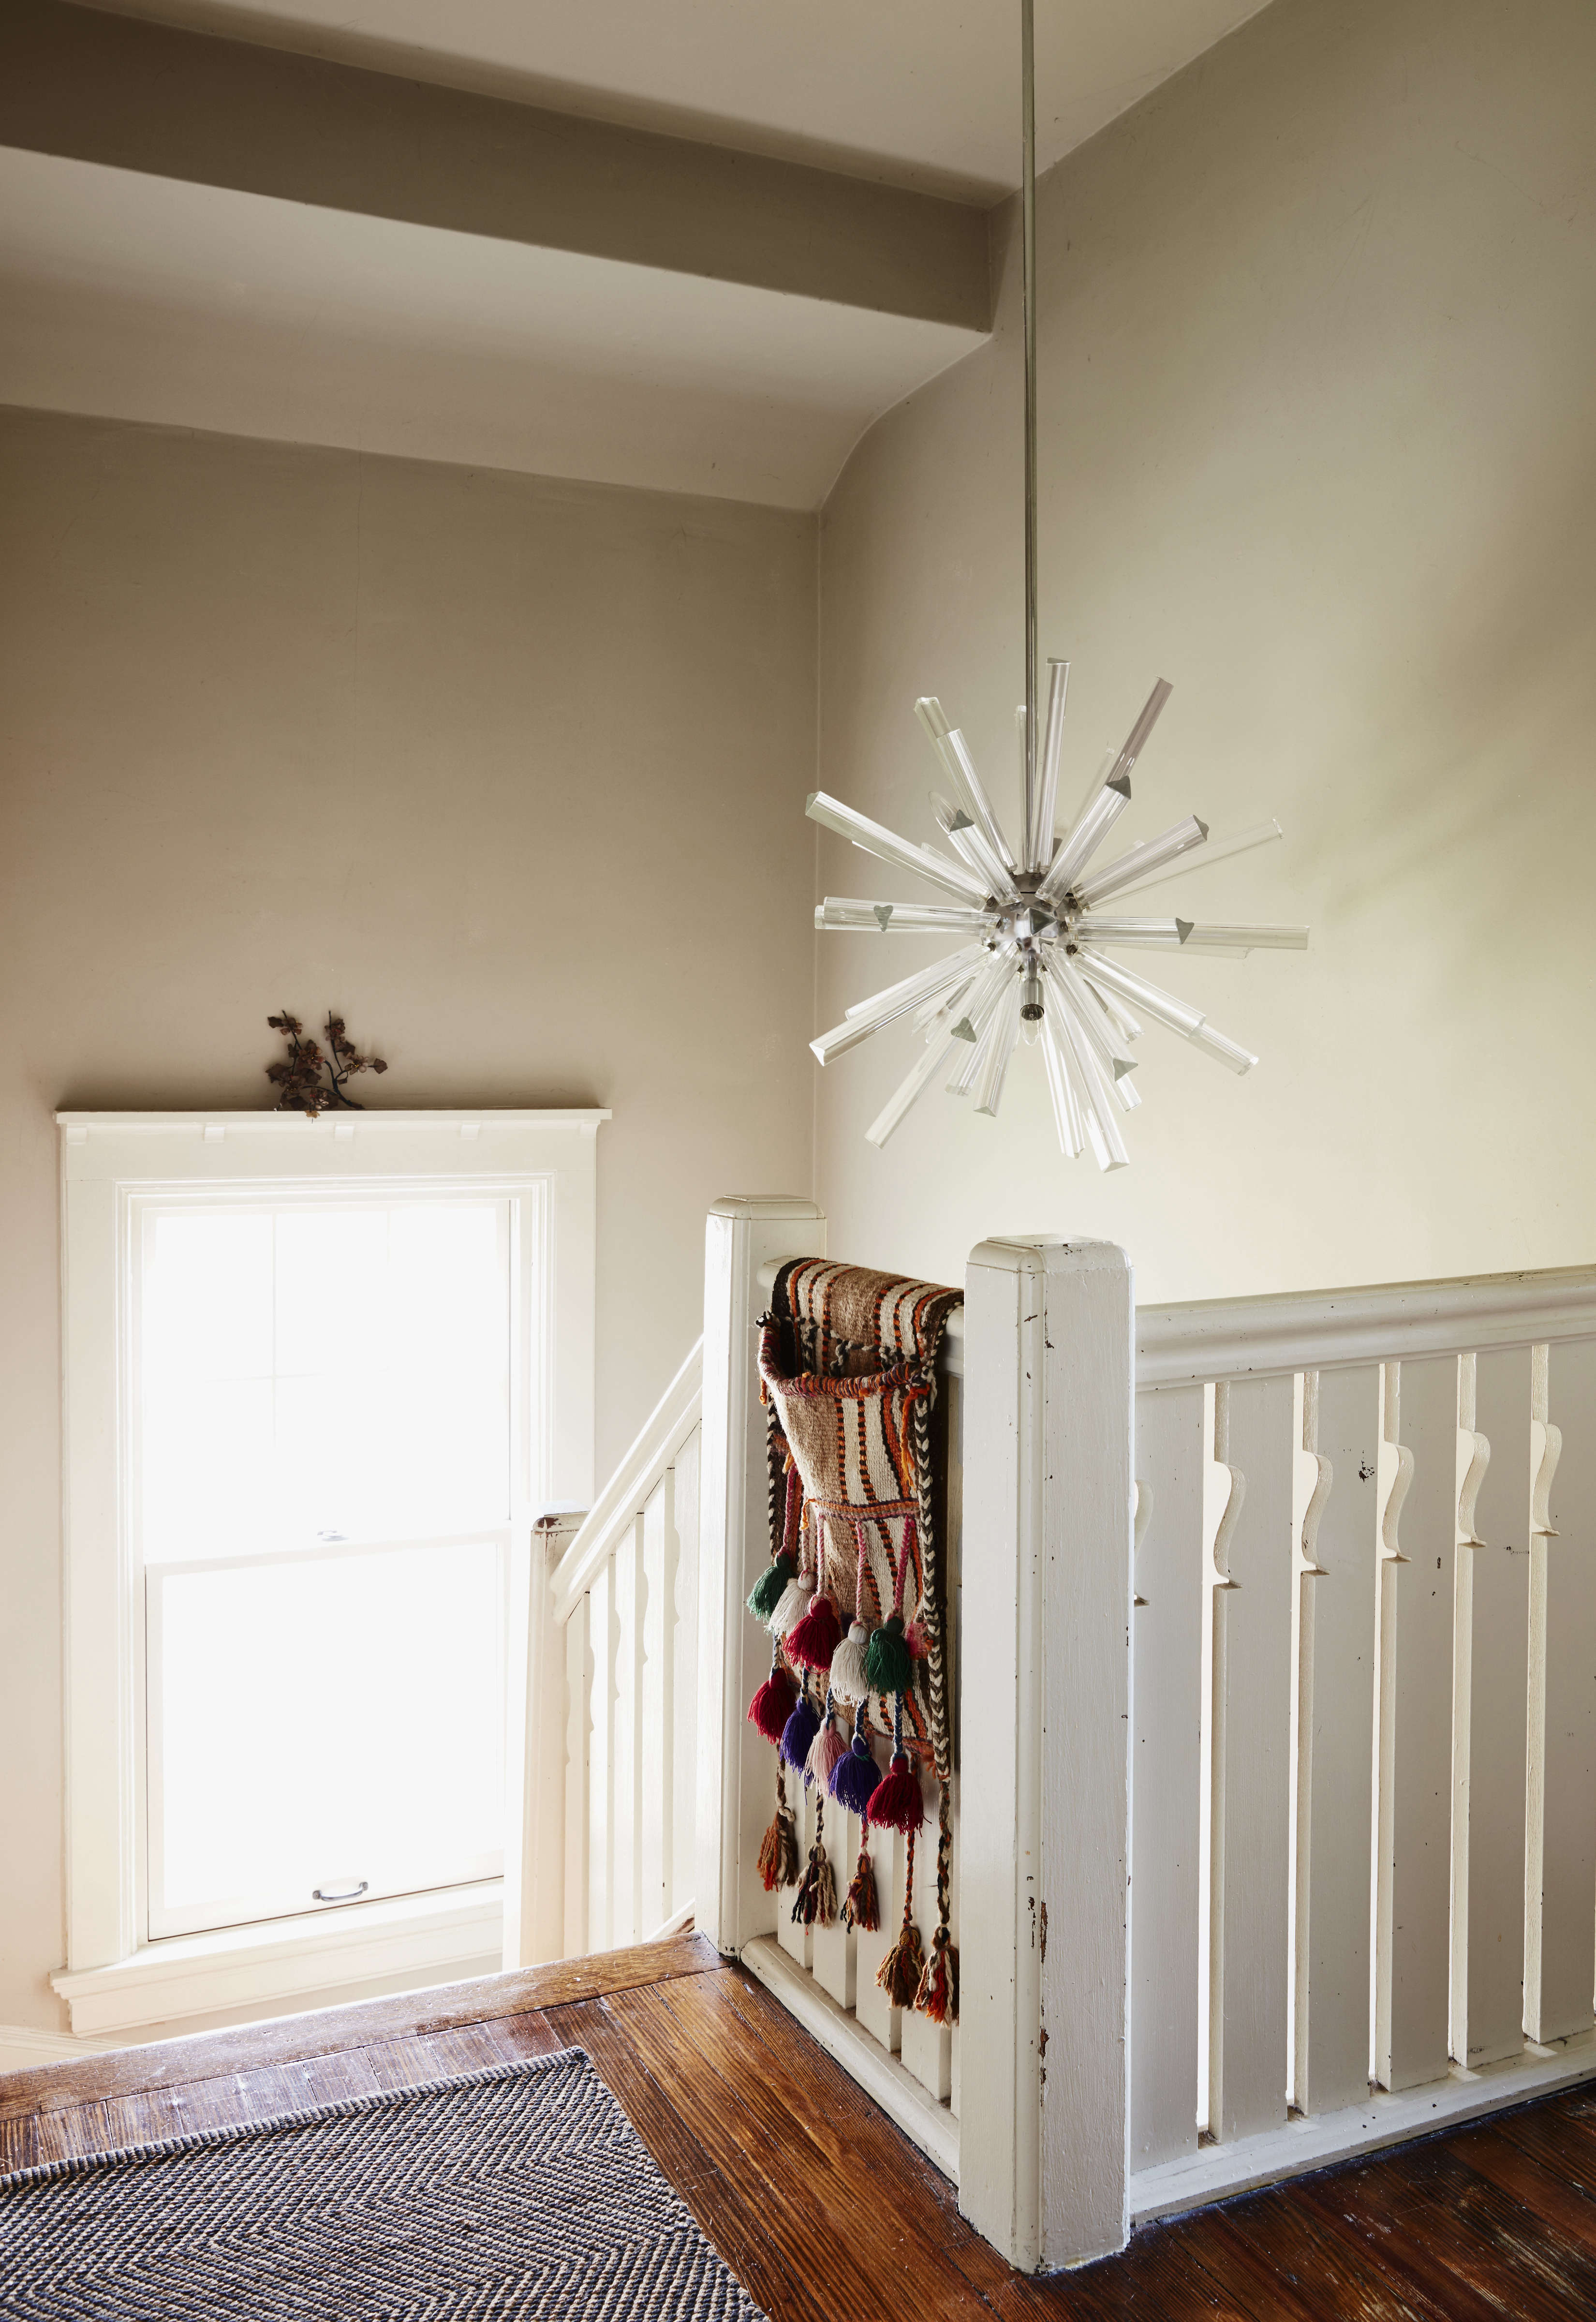 The upstairs landing is hung with a 60sMurano glass fixture that Danny got from a client who was getting rid of it. The tasseled saddlebag came fromNine Streets New York, one of Livia&#8